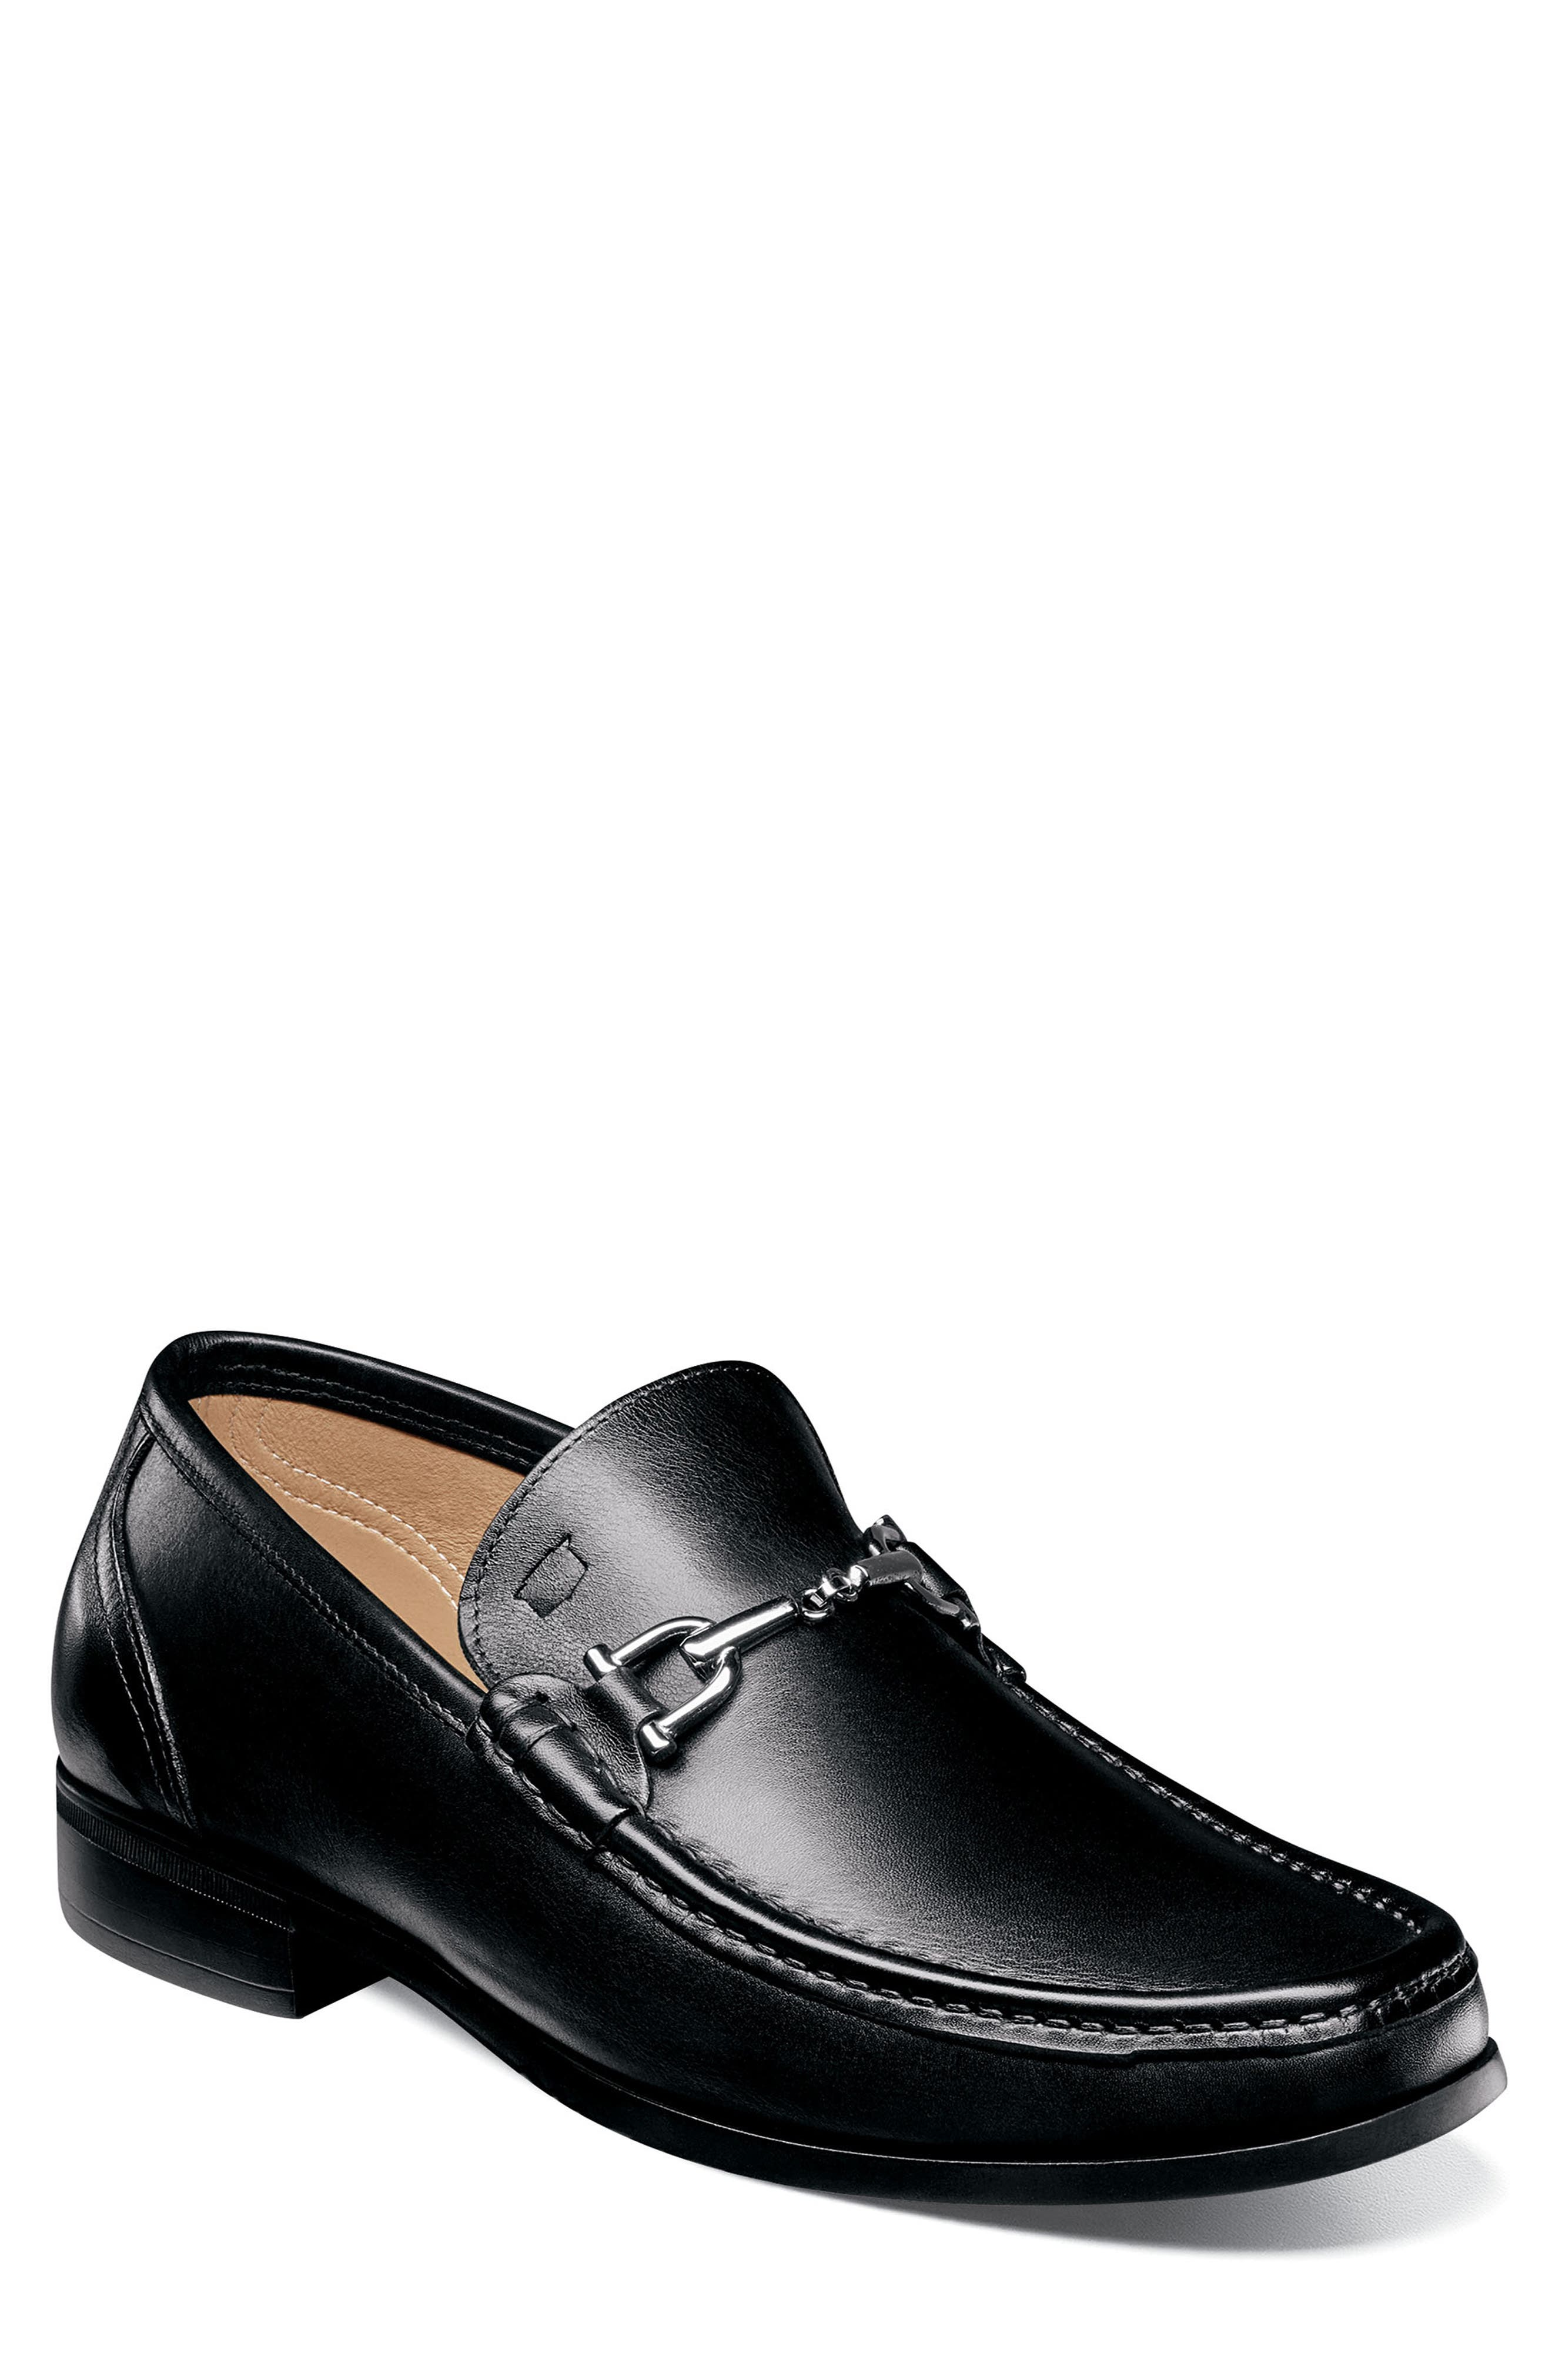 Imperial Puente Bit Loafer,                             Main thumbnail 1, color,                             BLACK LEATHER